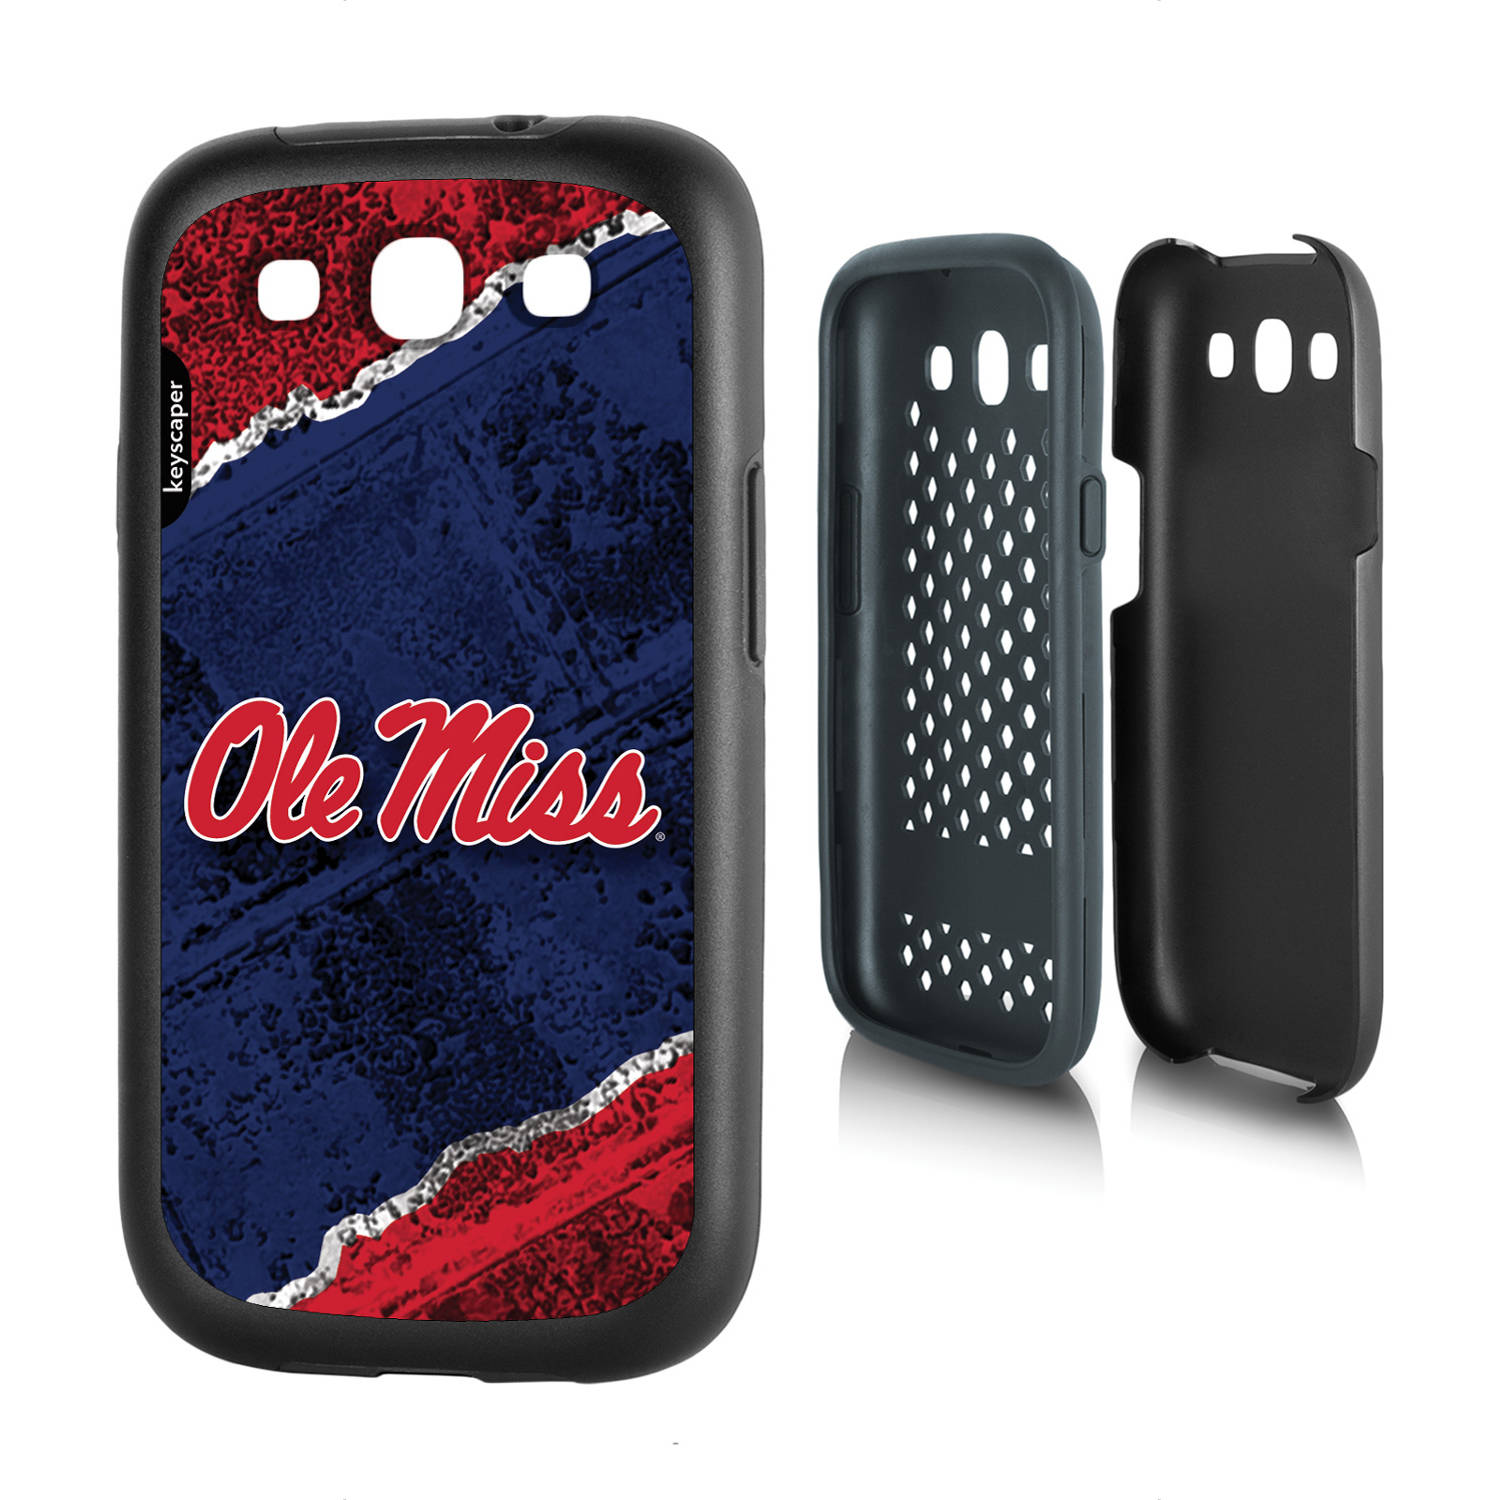 Mississippi Ole Miss Rebels Galaxy S3 Rugged Case